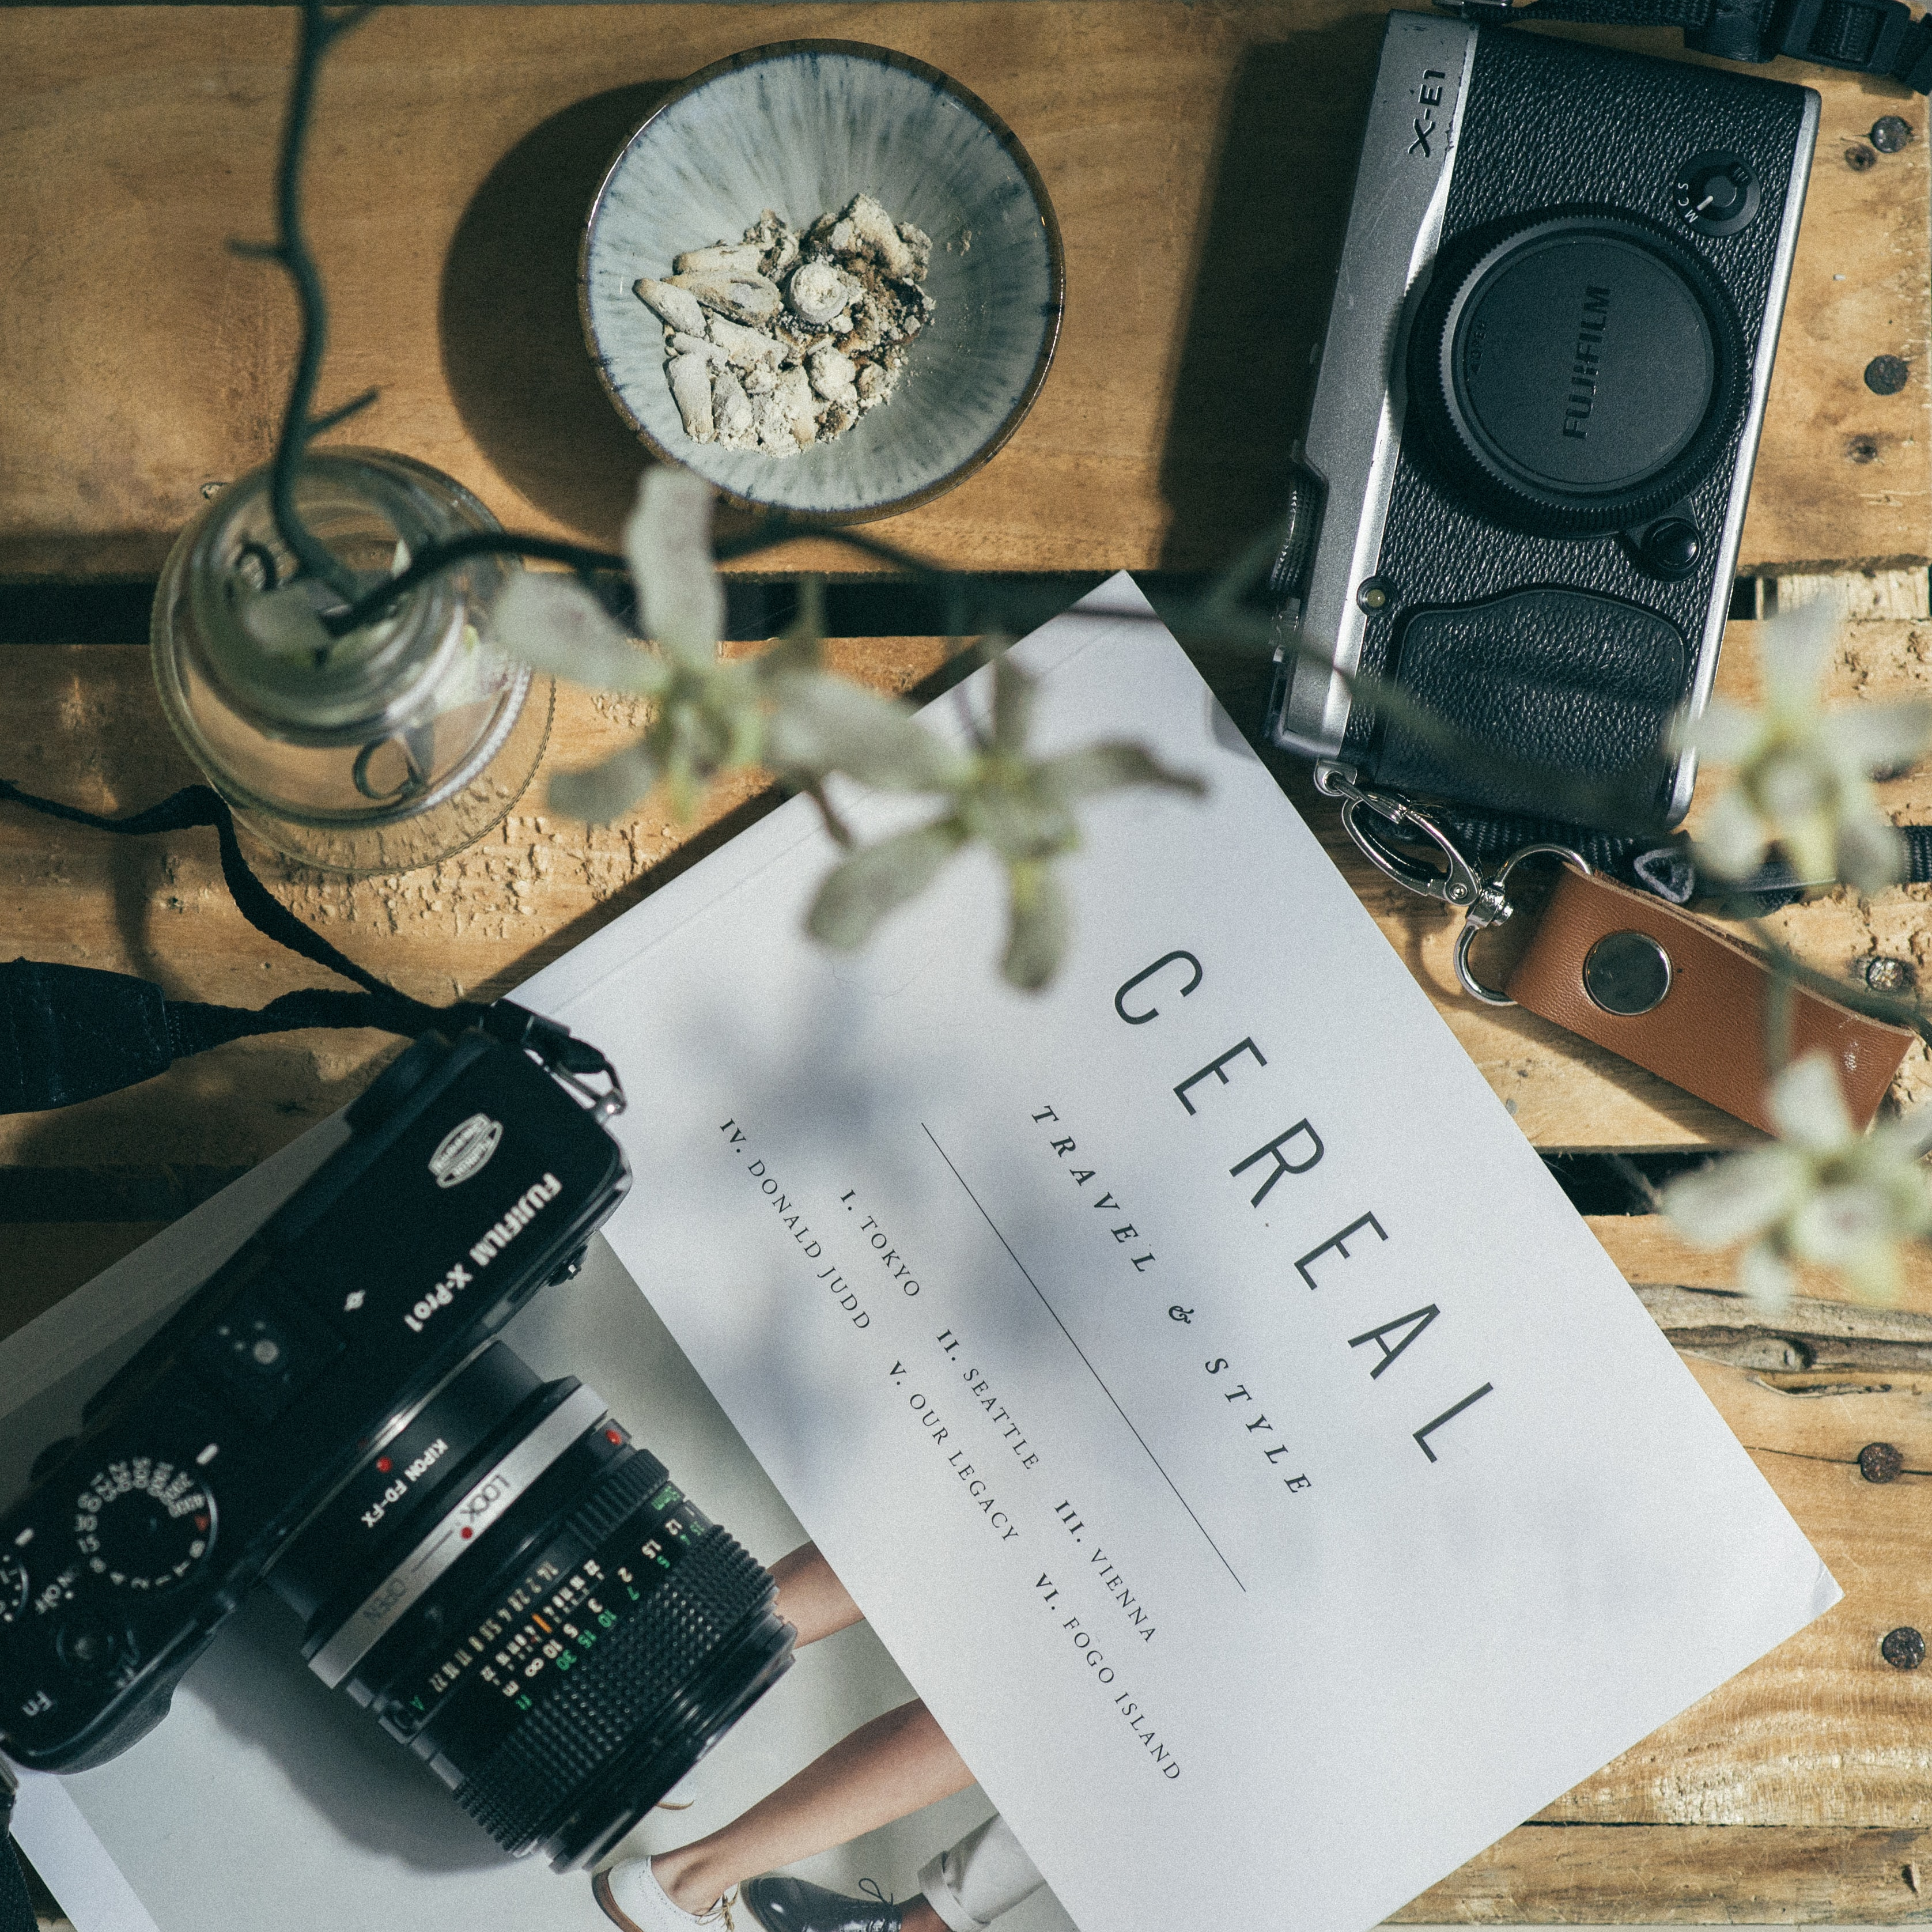 Two Fujifilm cameras, a blue bowl, a flower in a glass vase, and a magazine on a table